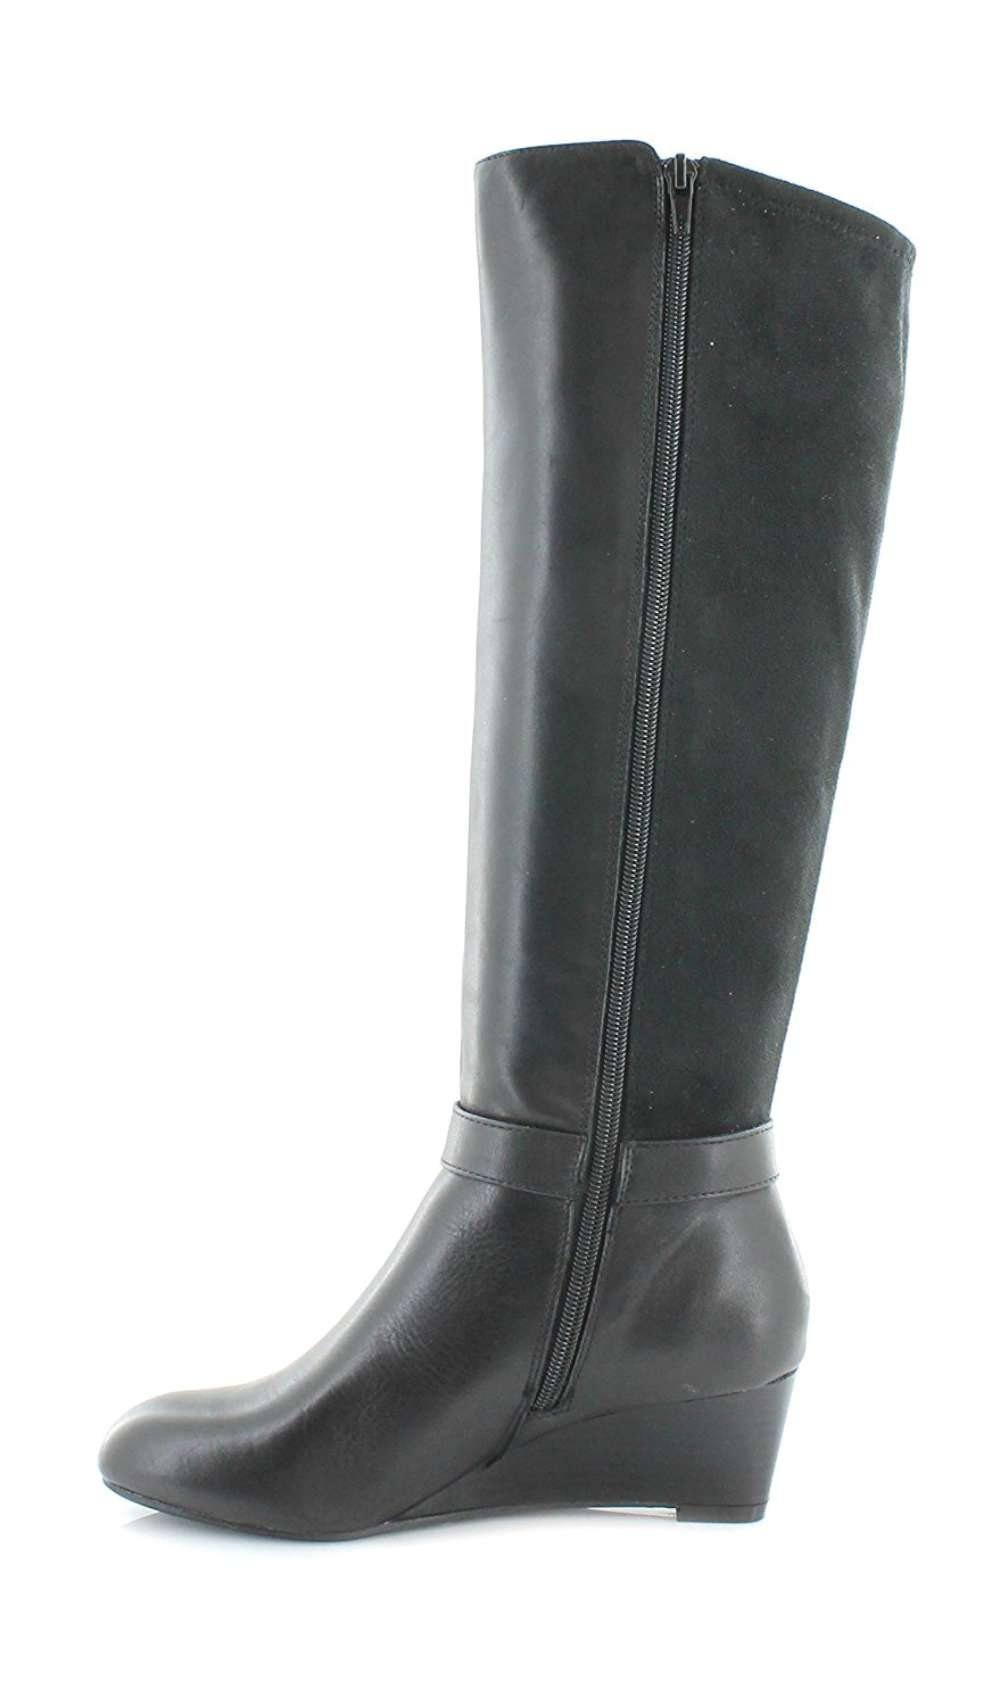 Giani Bernini Womens Dafnee Closed Toe Over Knee Fashion Boots, Black, Size 11.0